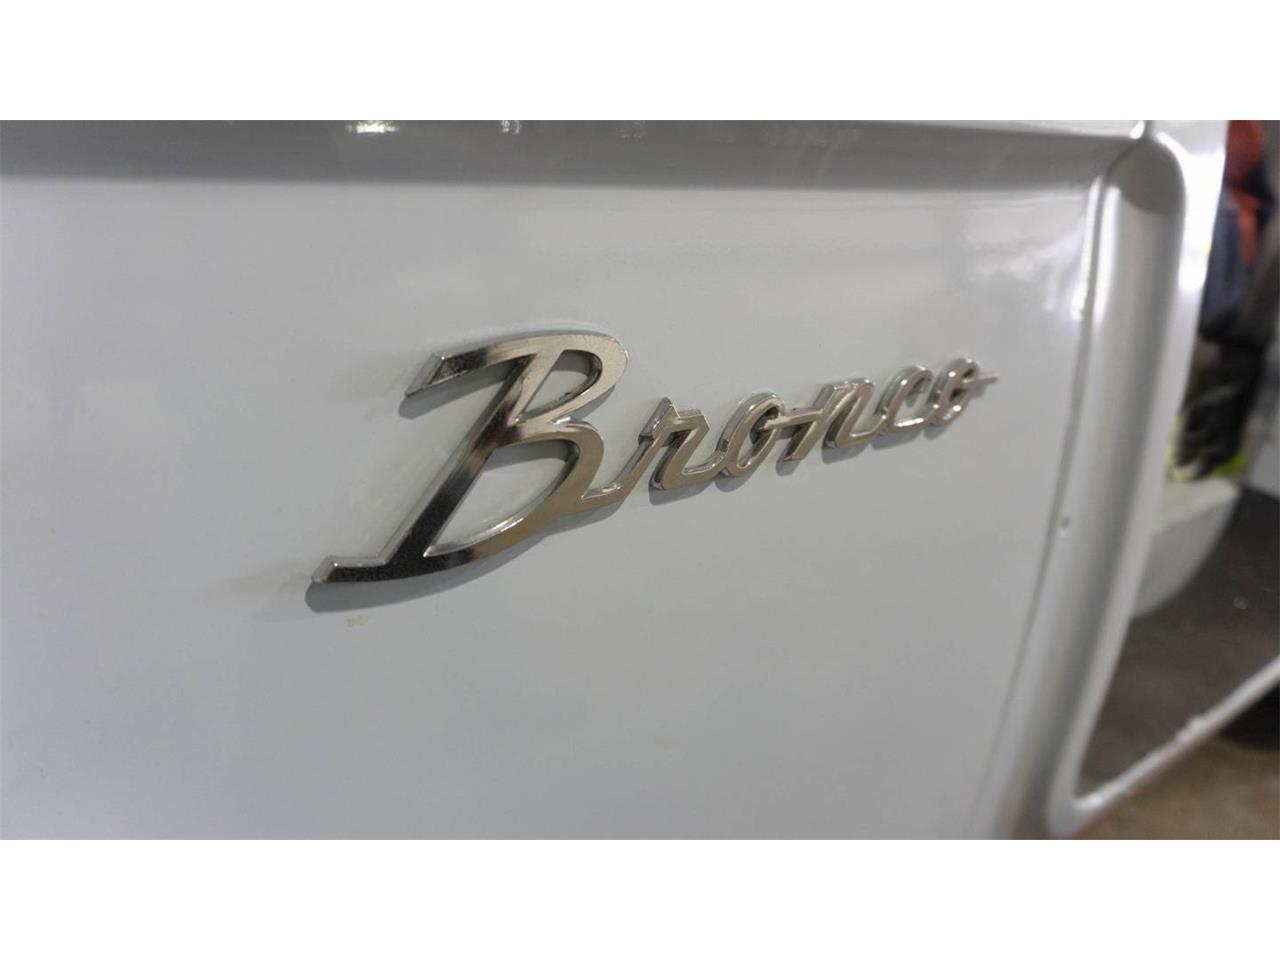 Large Picture of Classic 1966 Ford BRONCO UTE located in Louisiana Auction Vehicle - NS71